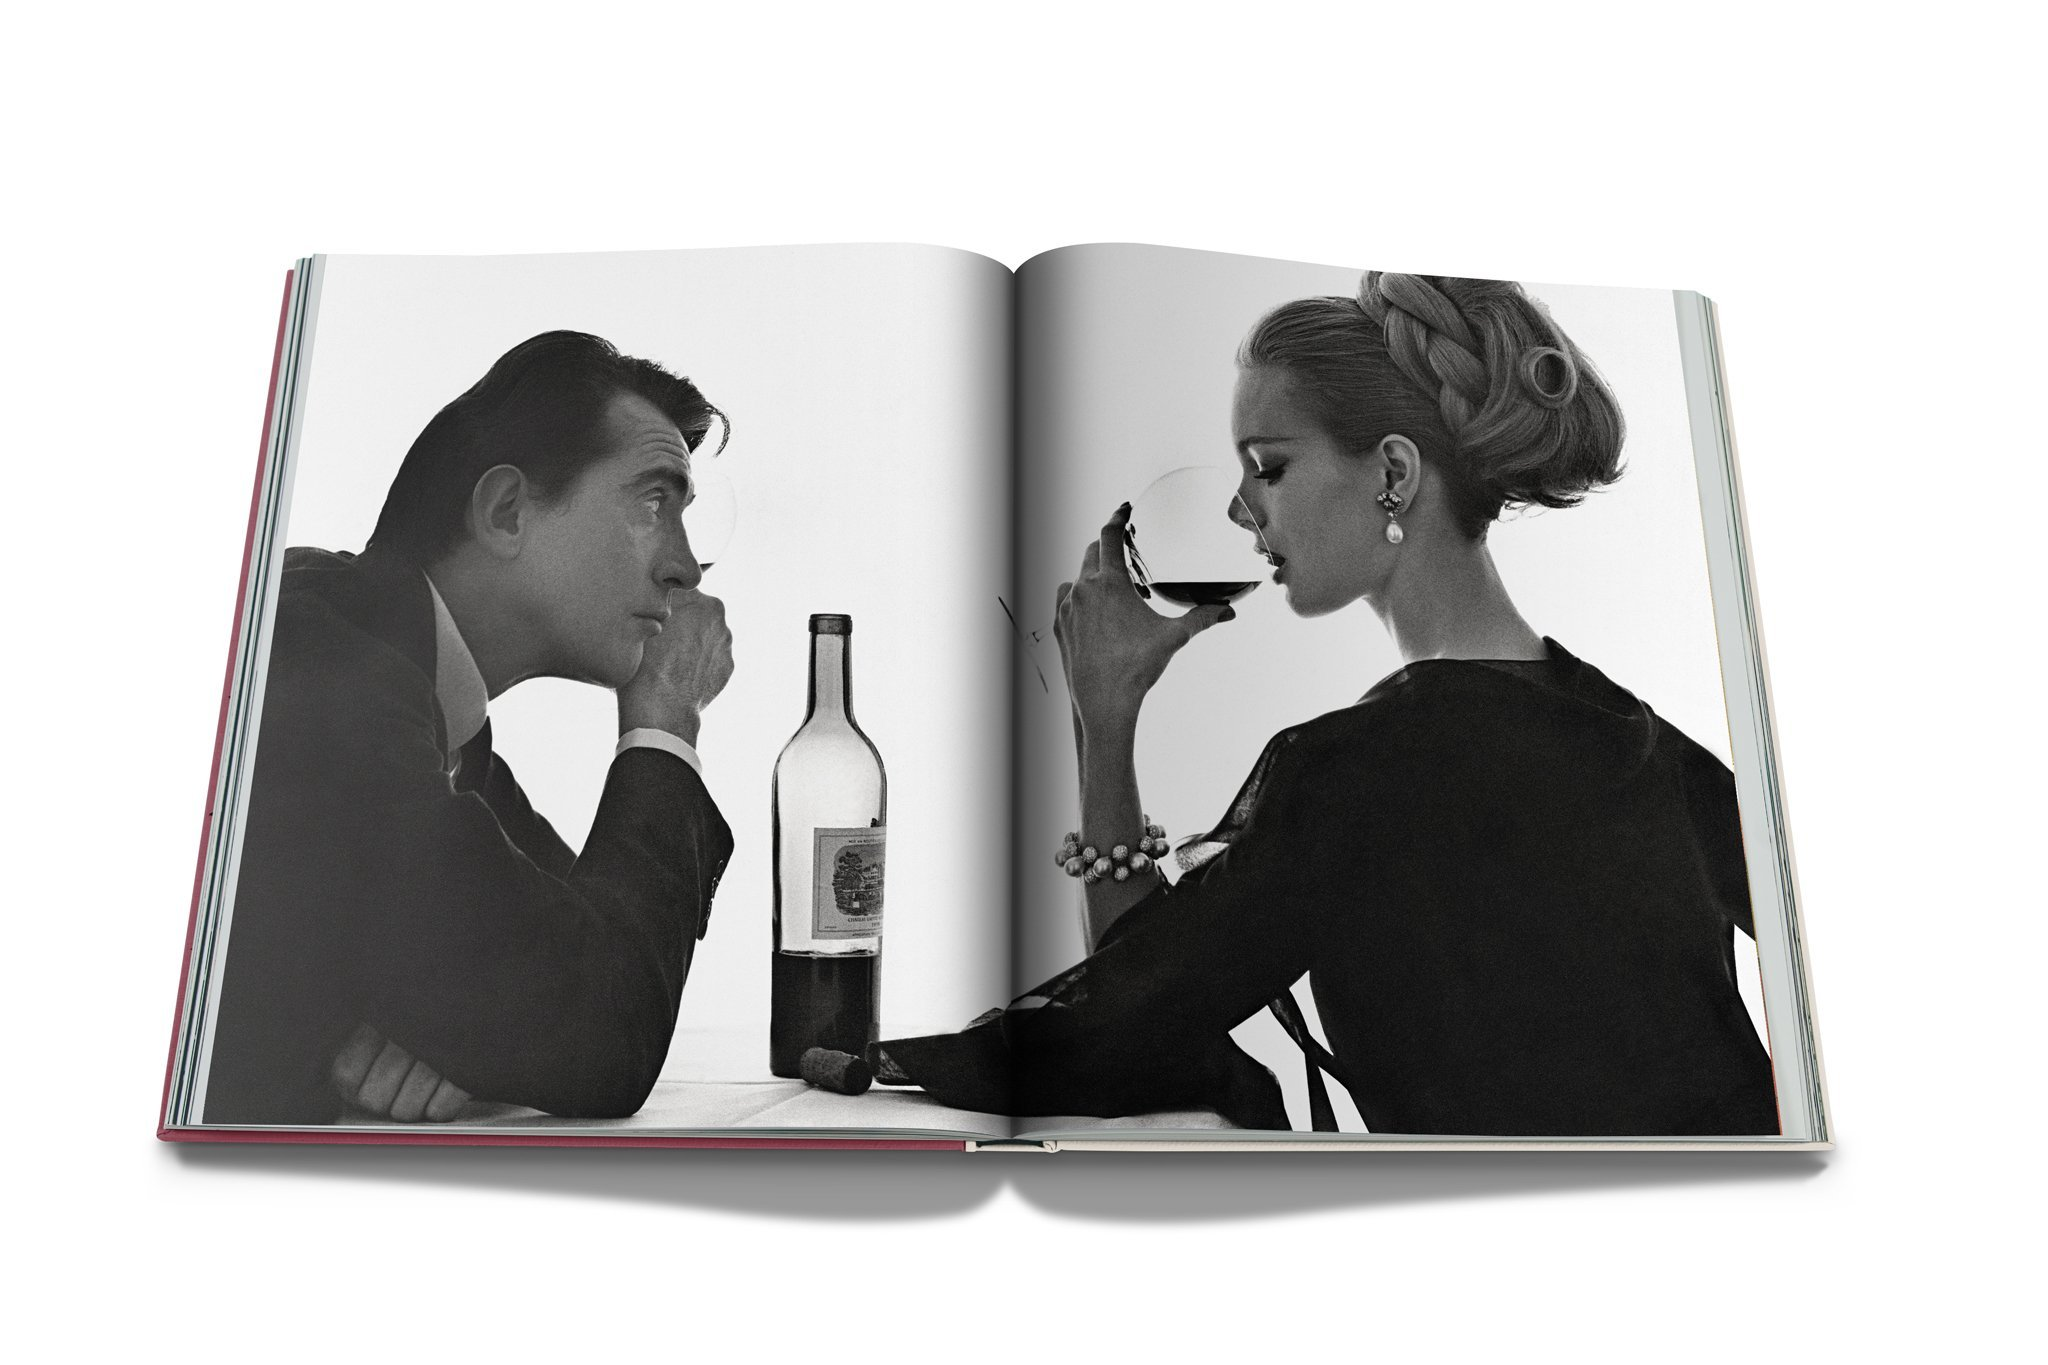 Must Have Luxury Coffee Table Books for Him & Her